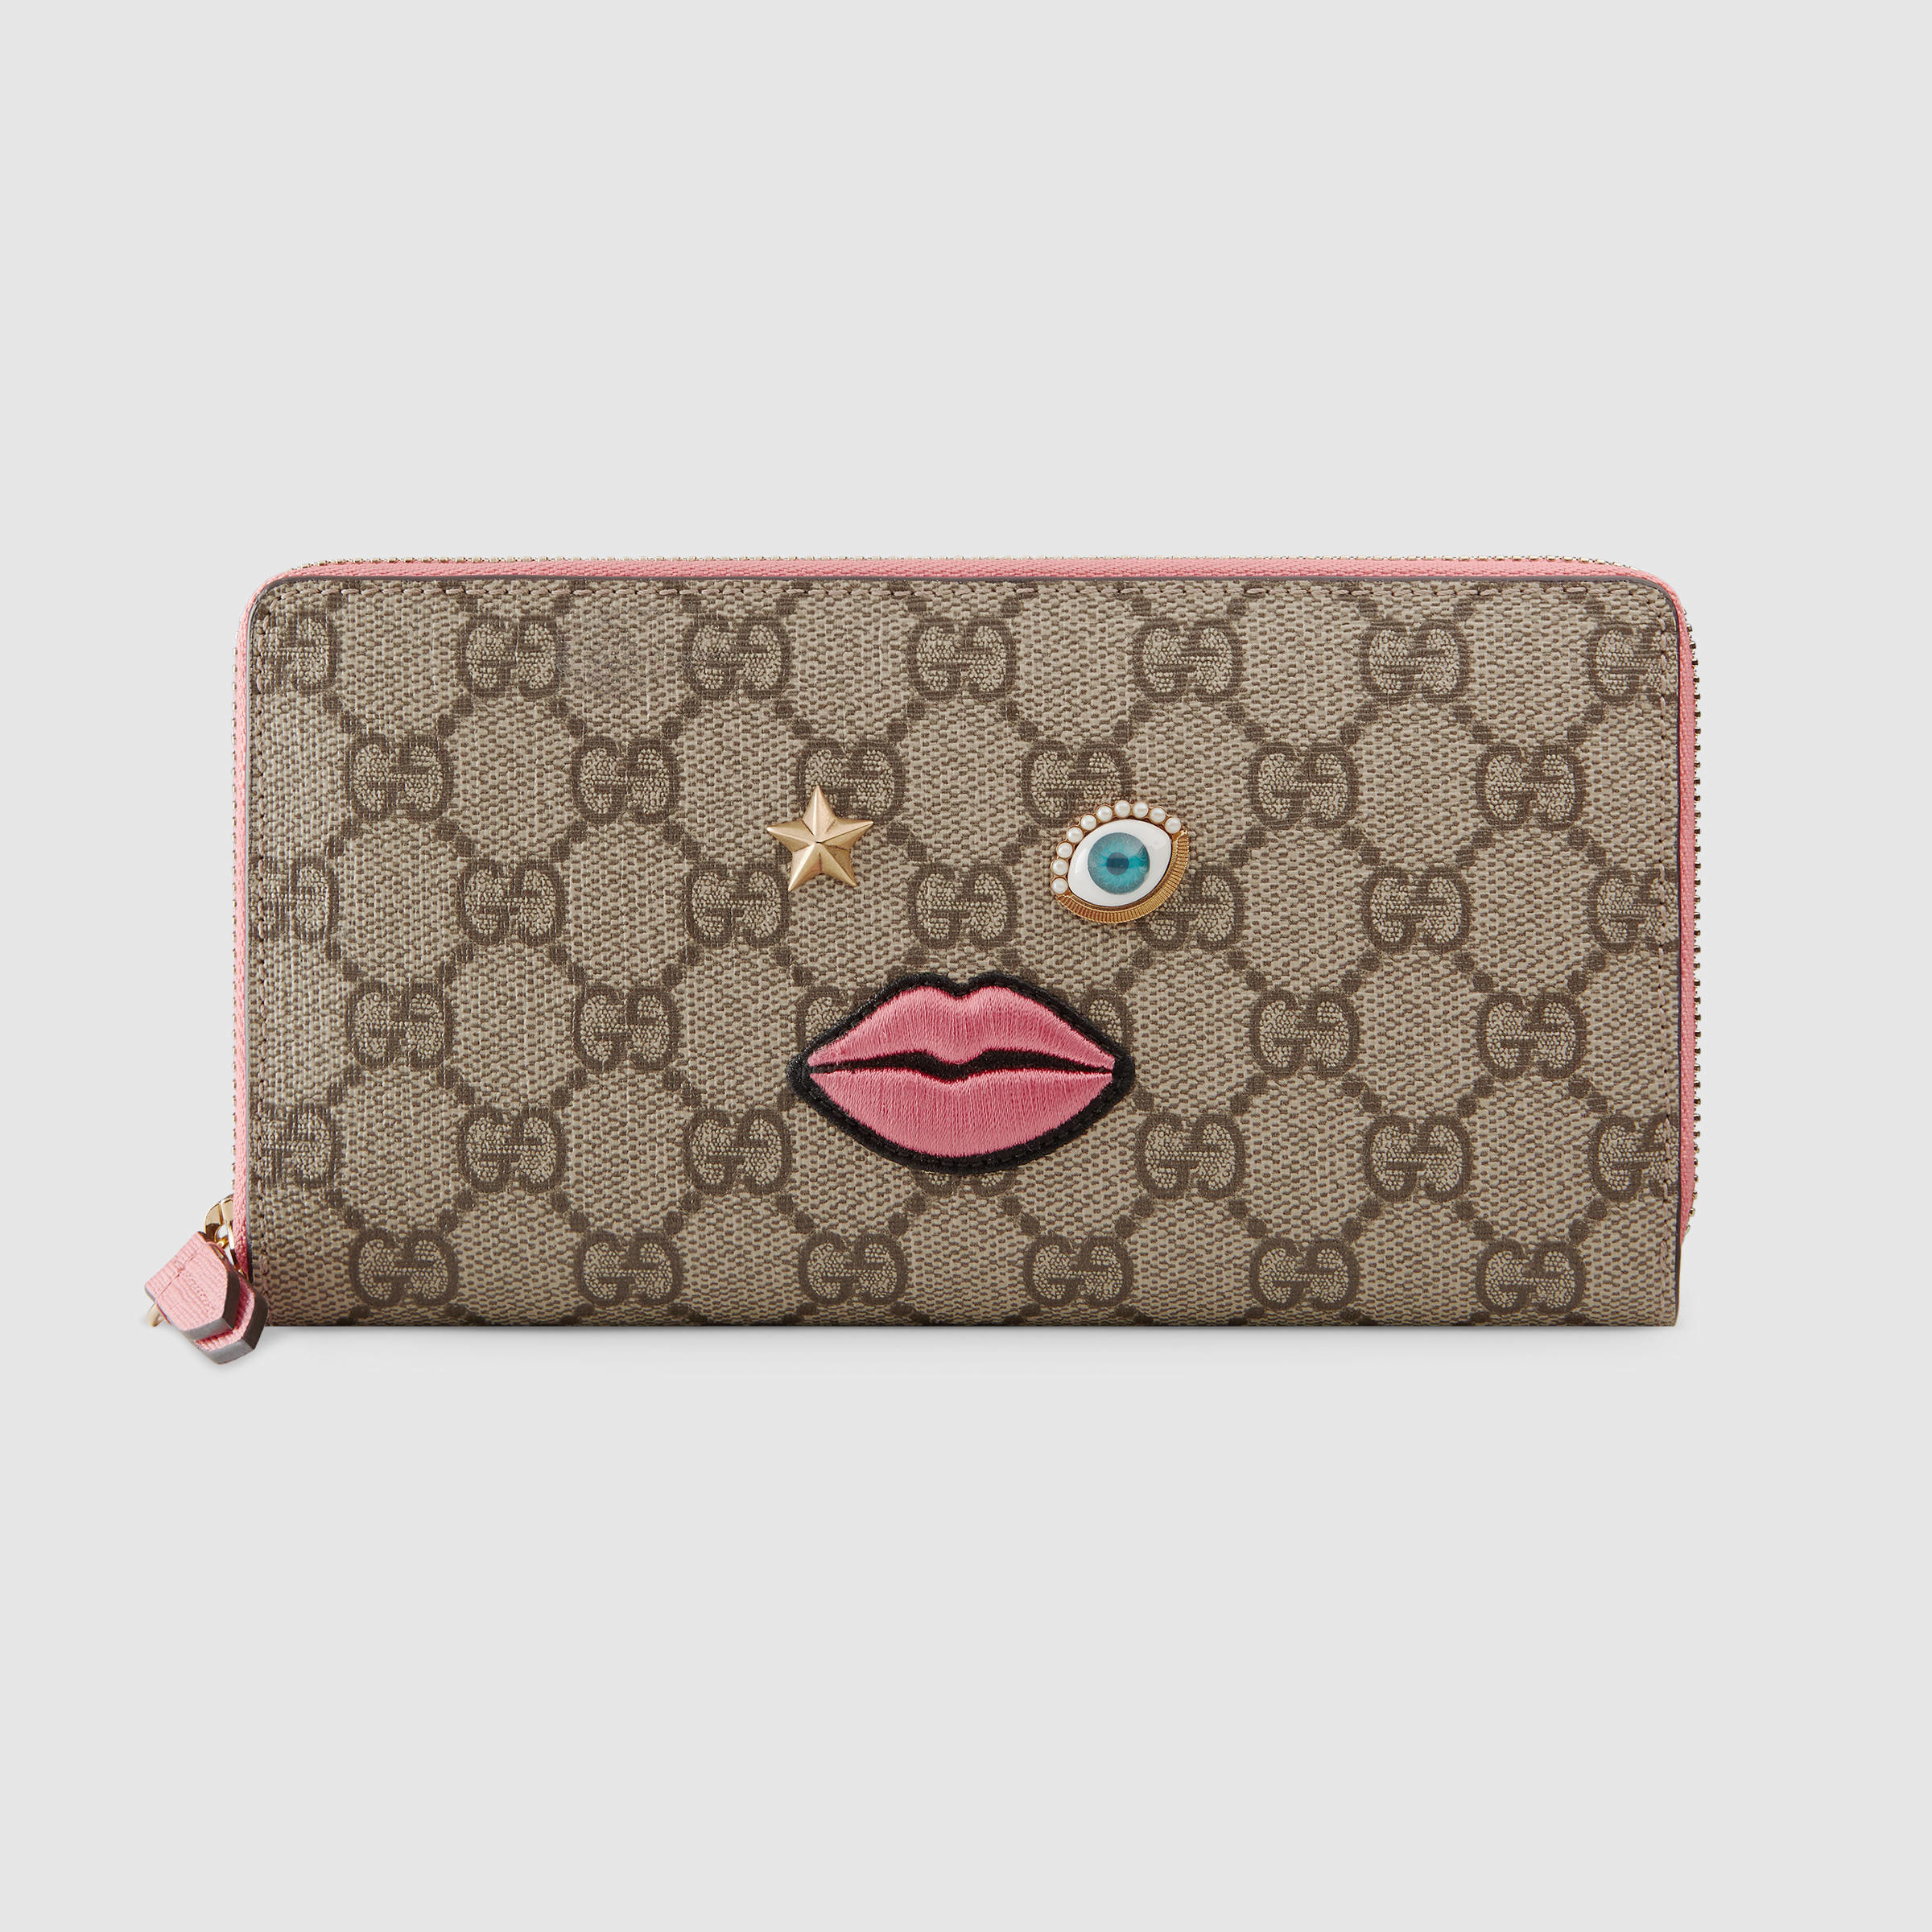 6d21249a2627 Gucci Zip Around Wallet With Embroidered Face 431392 Pink | Stanford ...